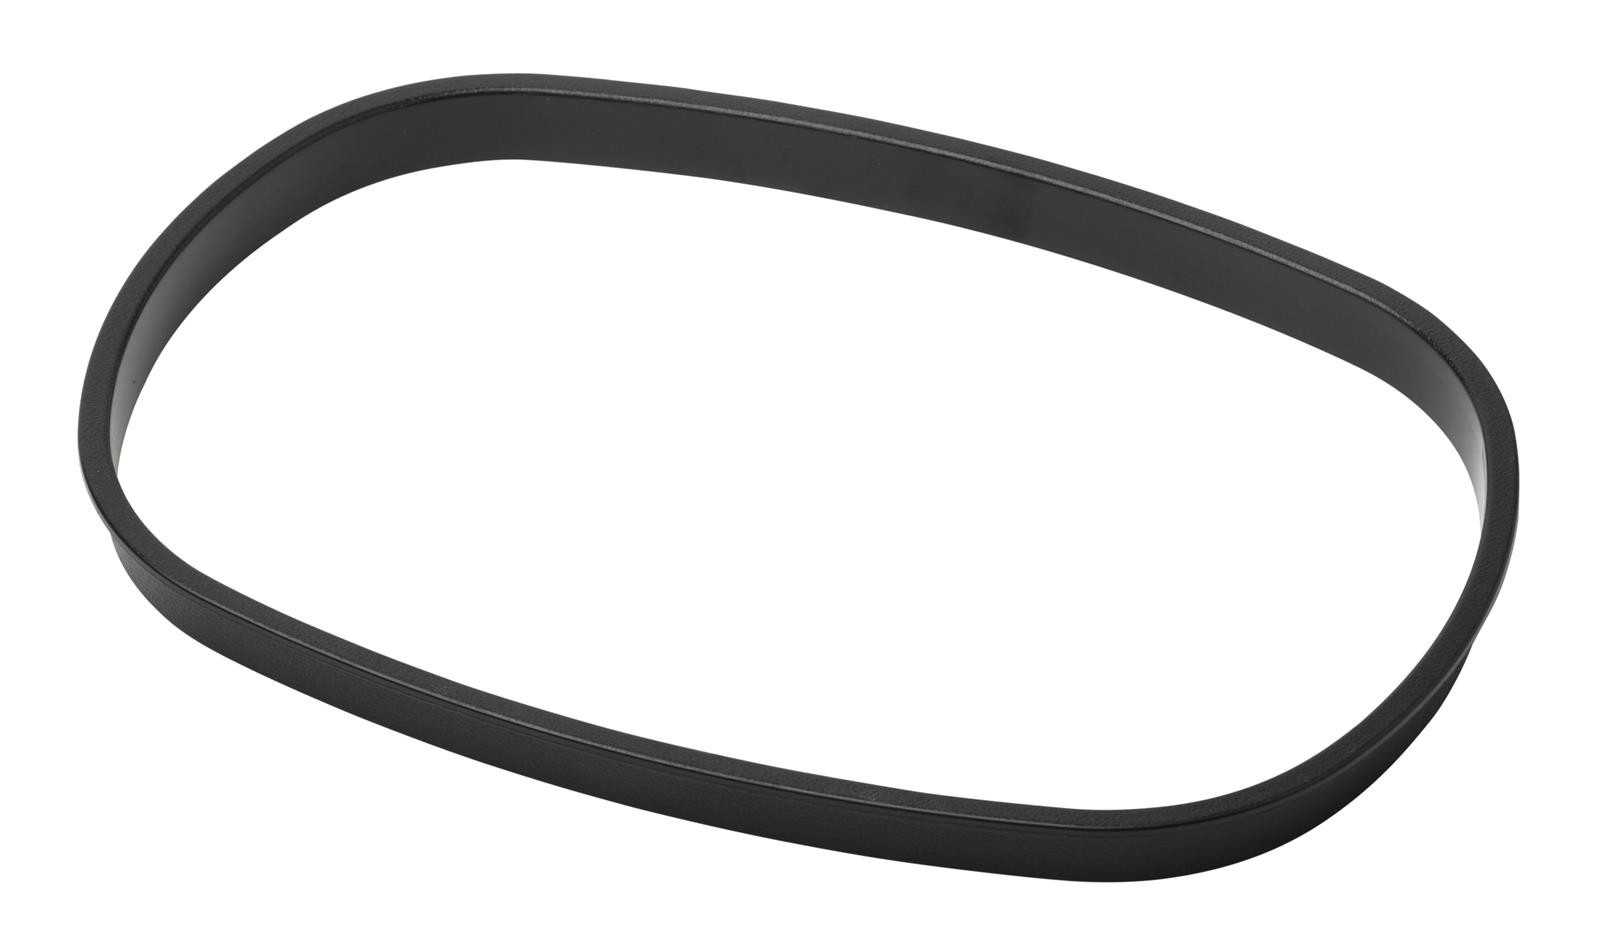 Replacement Ring For The 12 Litre Oval Plus Series Autobin